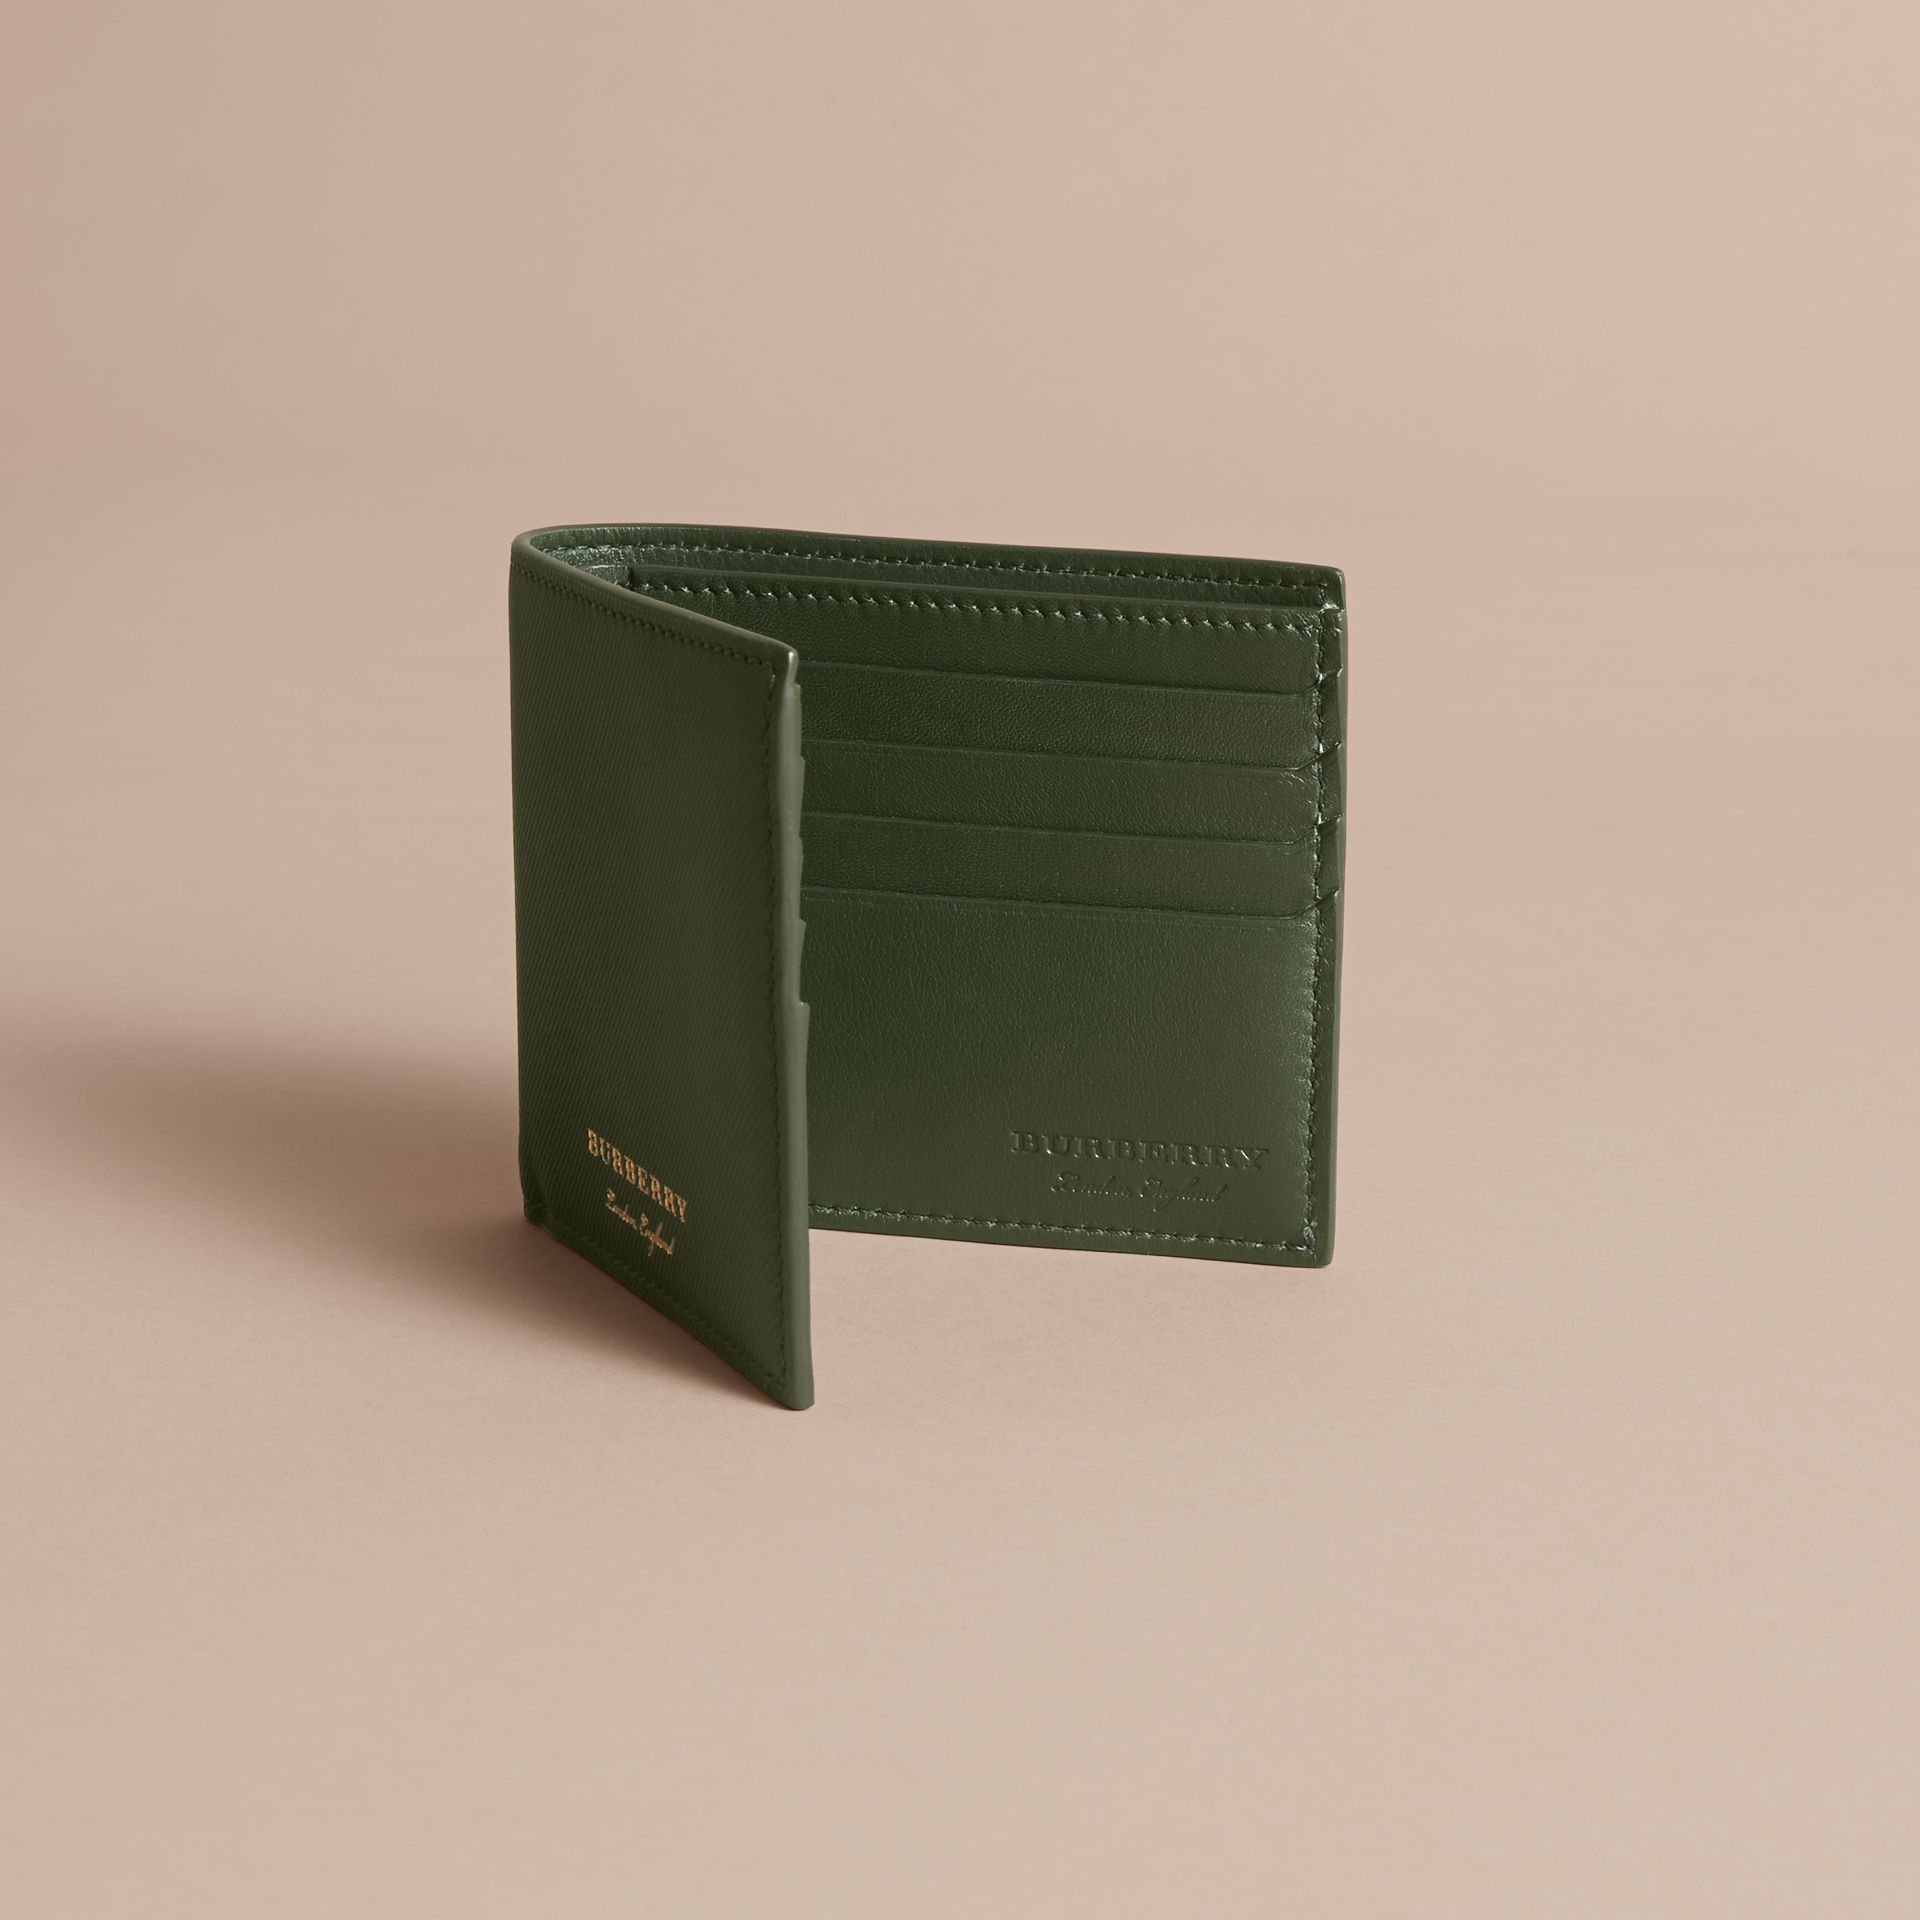 Trench Leather International Bifold Wallet in Dark Forest Green - Men | Burberry Hong Kong - gallery image 5